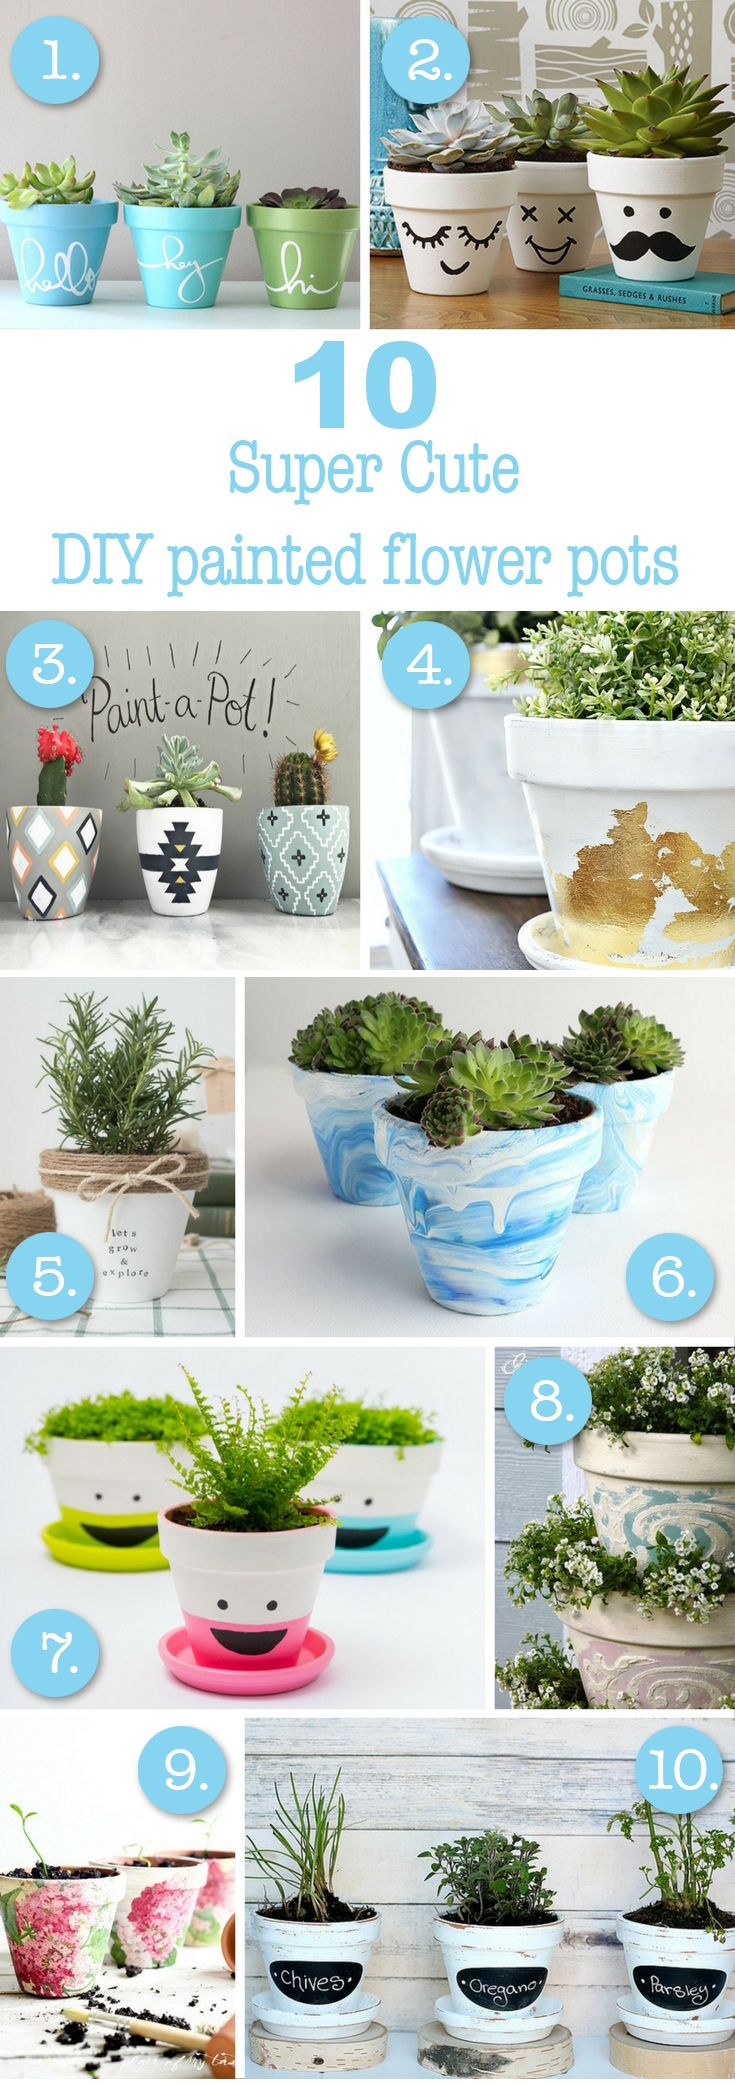 10 More Super Cute Ways To Diy Your Flower Pots Painted Flower